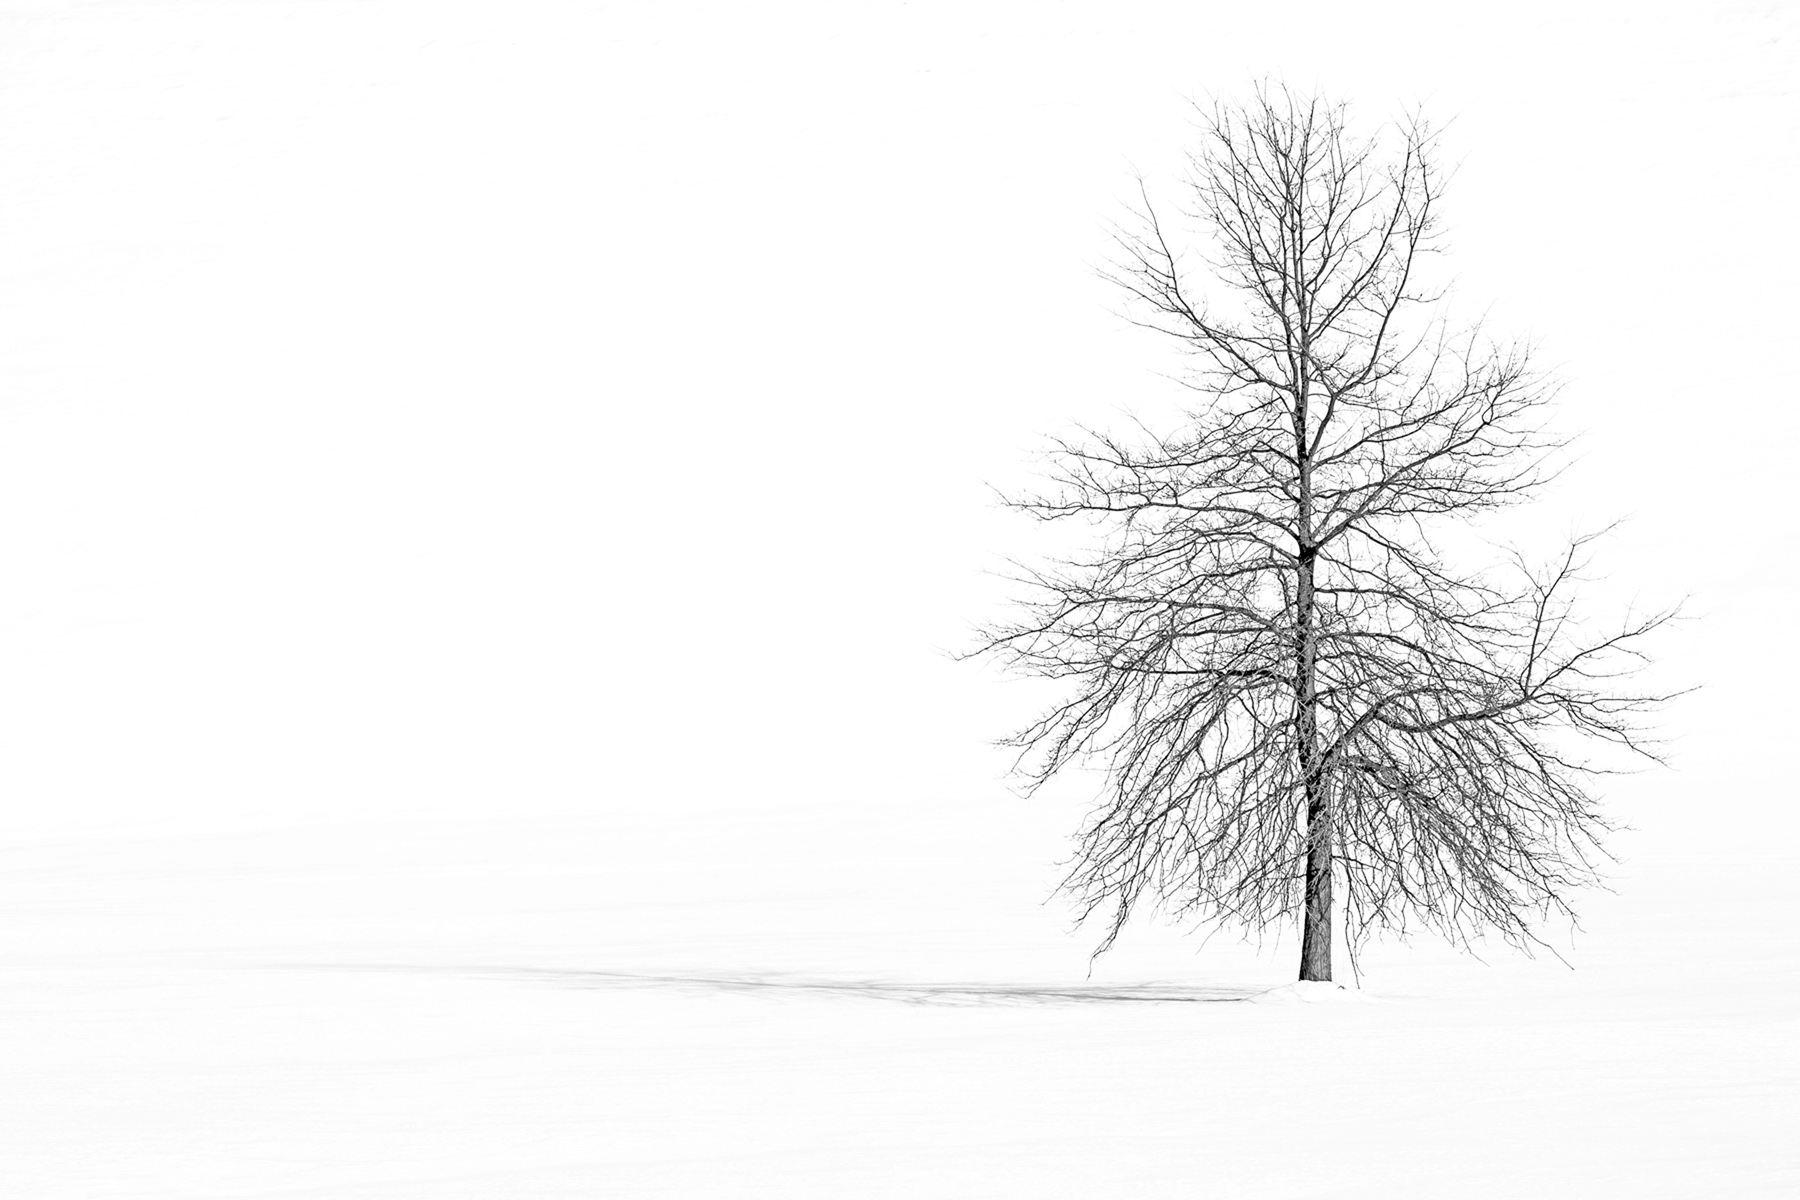 Gilson_Pin Oak in Winter 3720.jpg